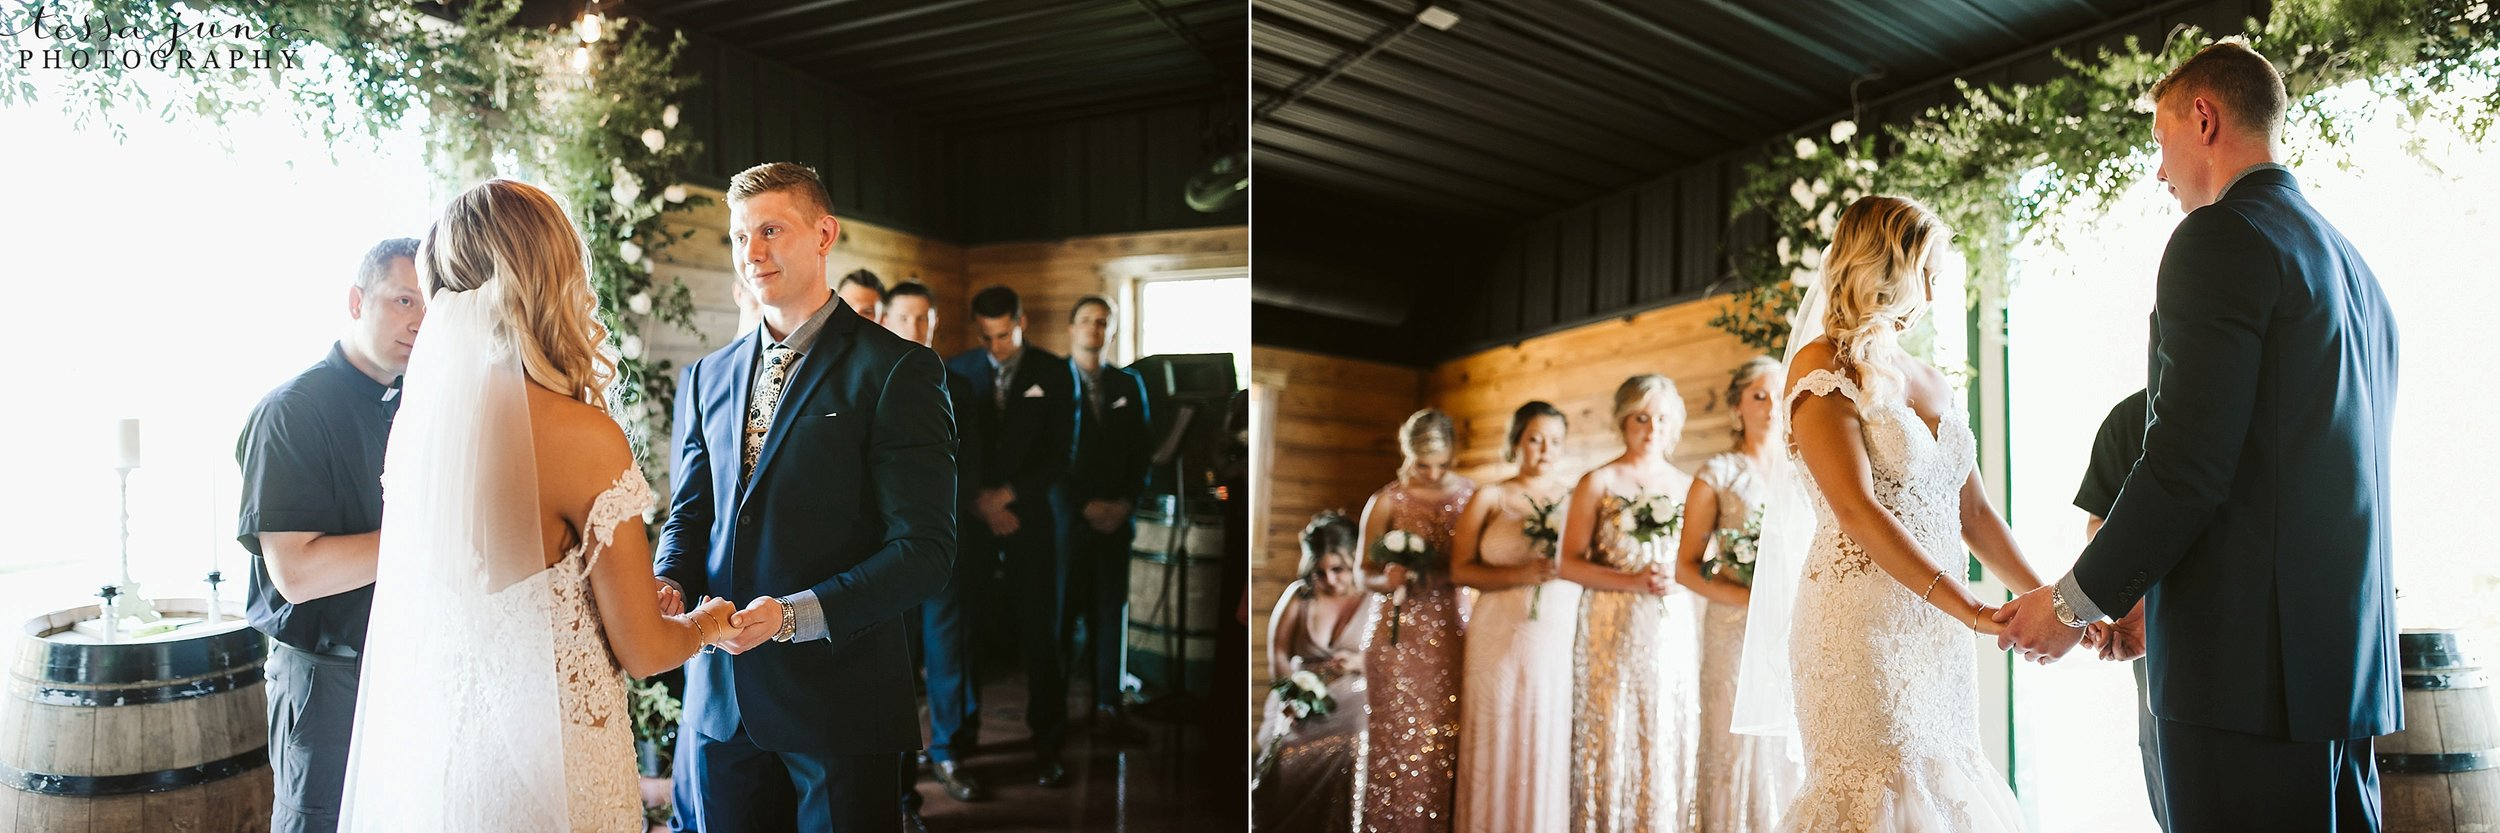 carlos-creek-winery-wedding-alexandria-minnesota-glam-elegant-floral-104.jpg